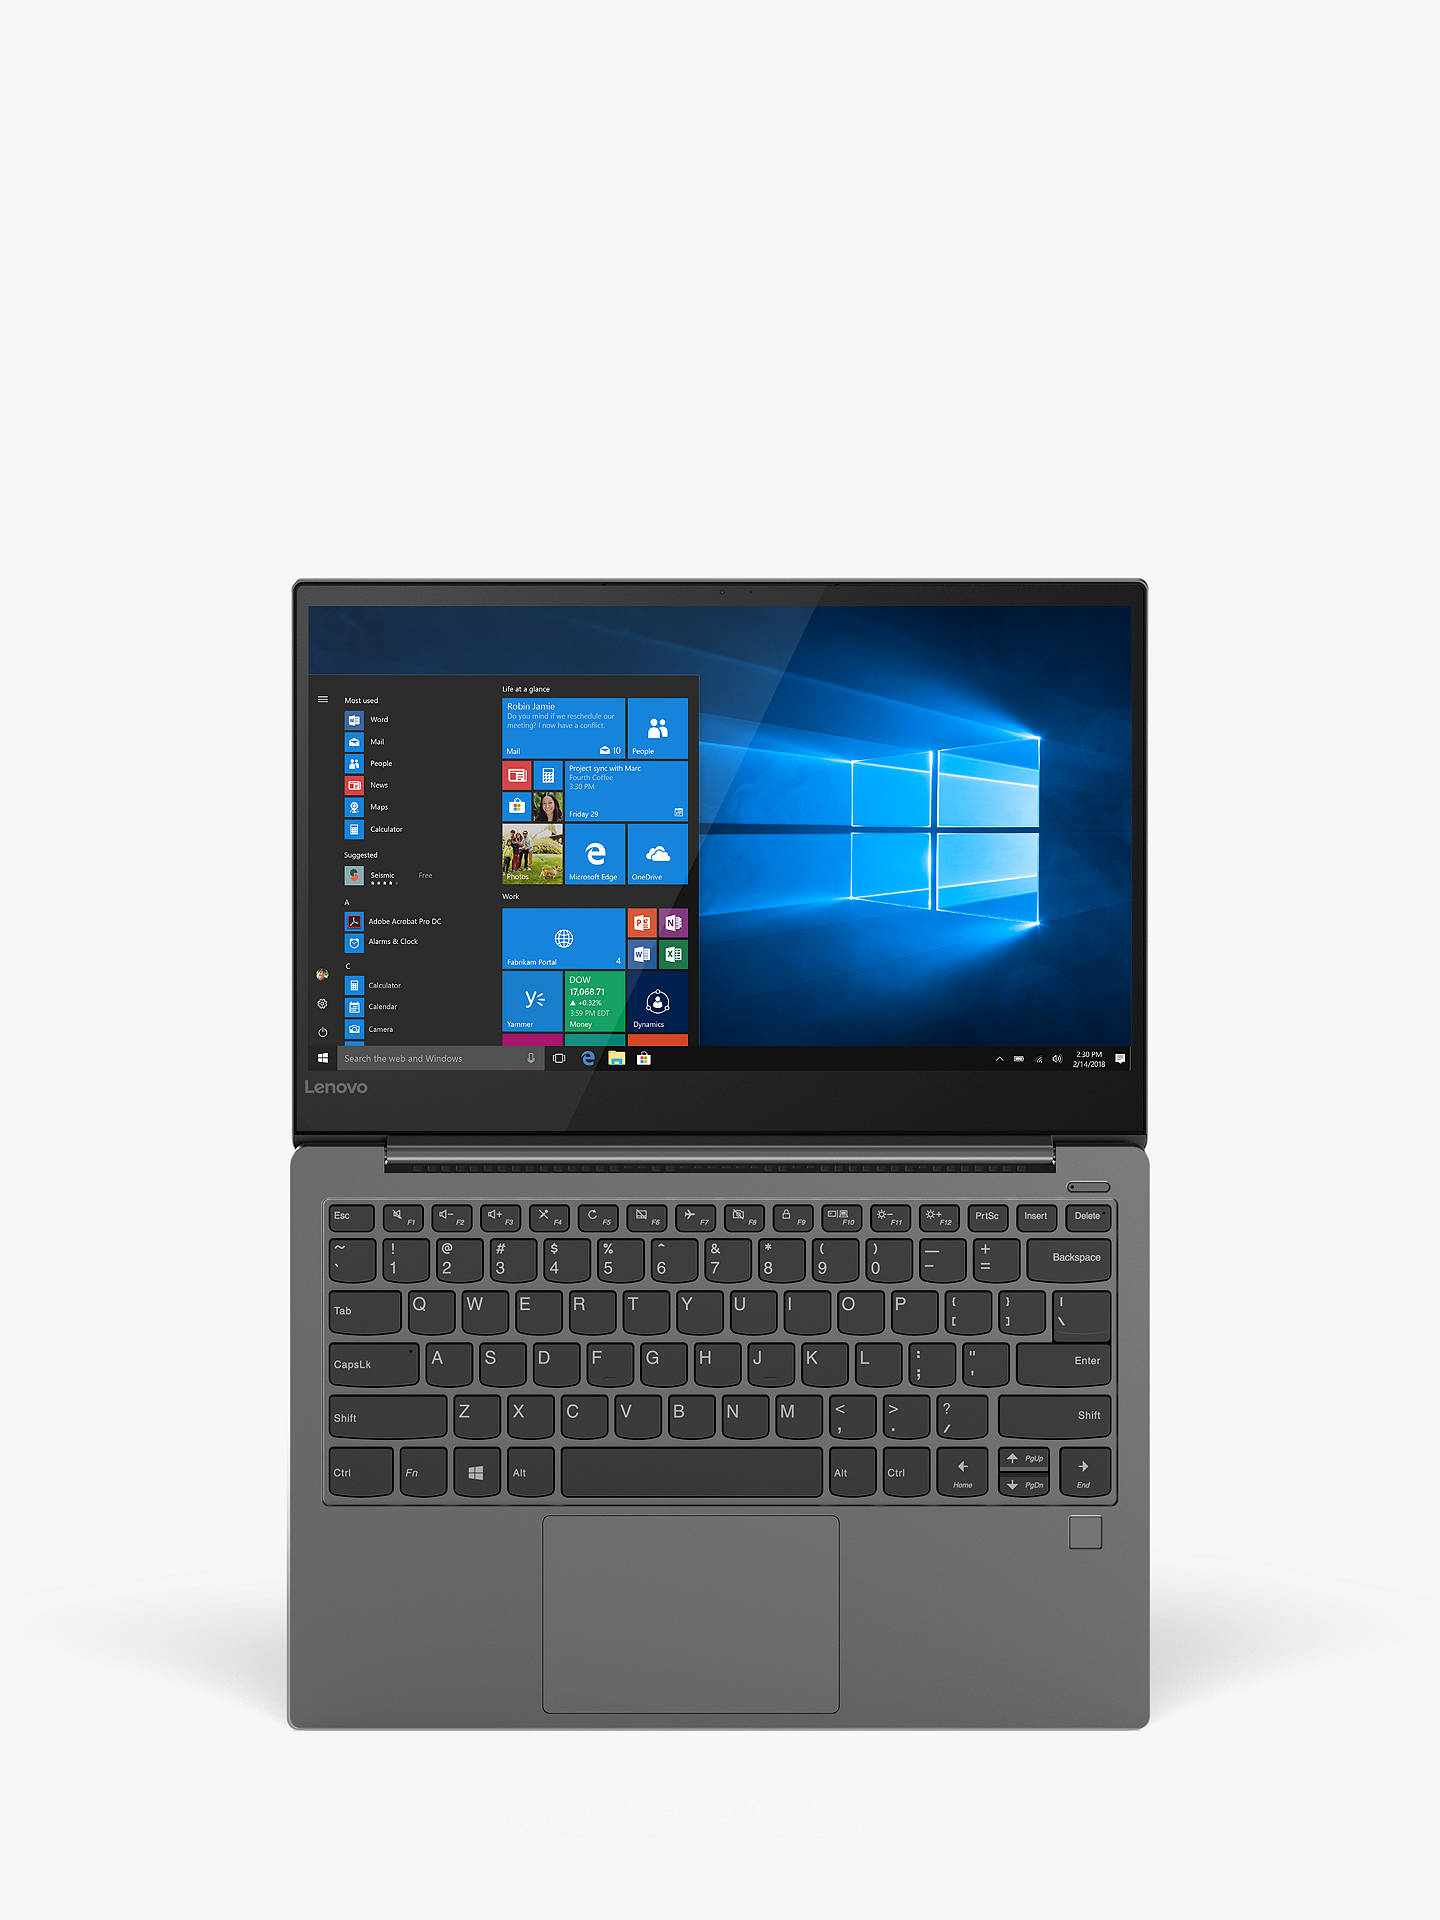 Lenovo Yoga S730 81j0000puk Laptop Intel Core I7 Processor 16gb Ram 256gb Ssd 13 3 Full Hd Iron Grey At John Lewis Partners